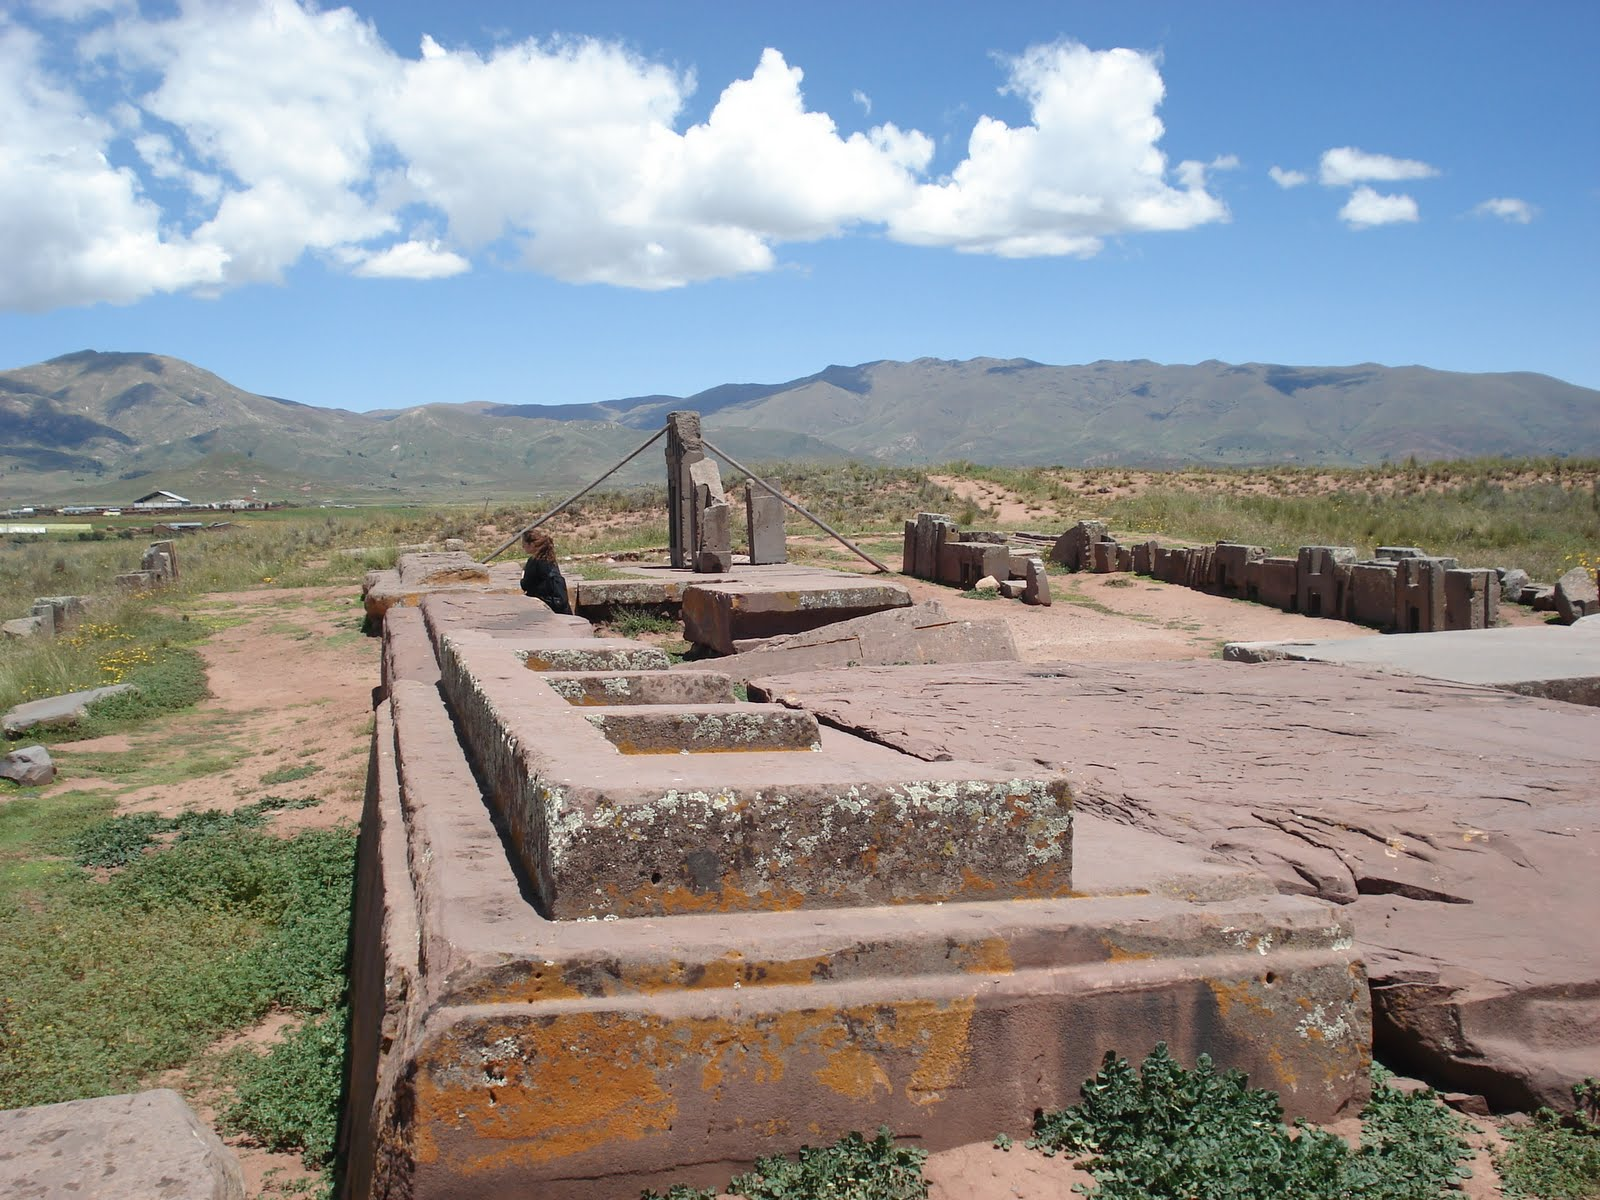 Andes Mountains Pumapunku Plateau